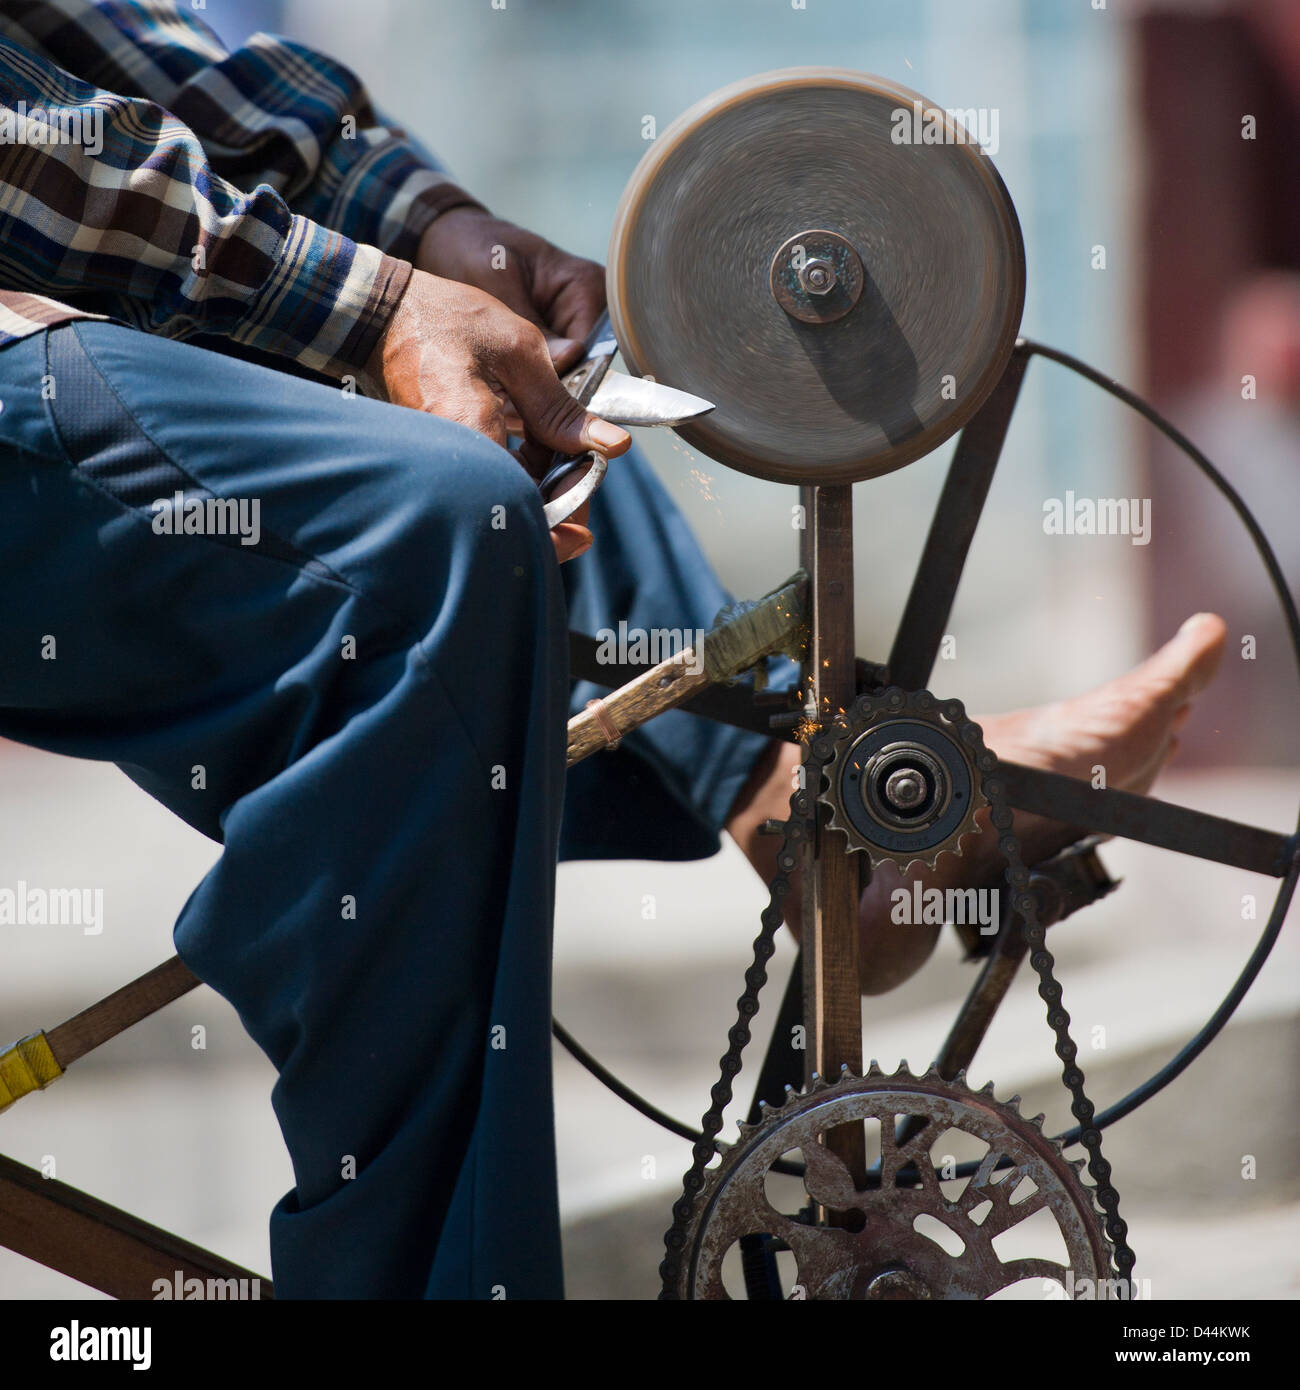 Man sharpening knives and scissors on the street in Nepal - Stock Image